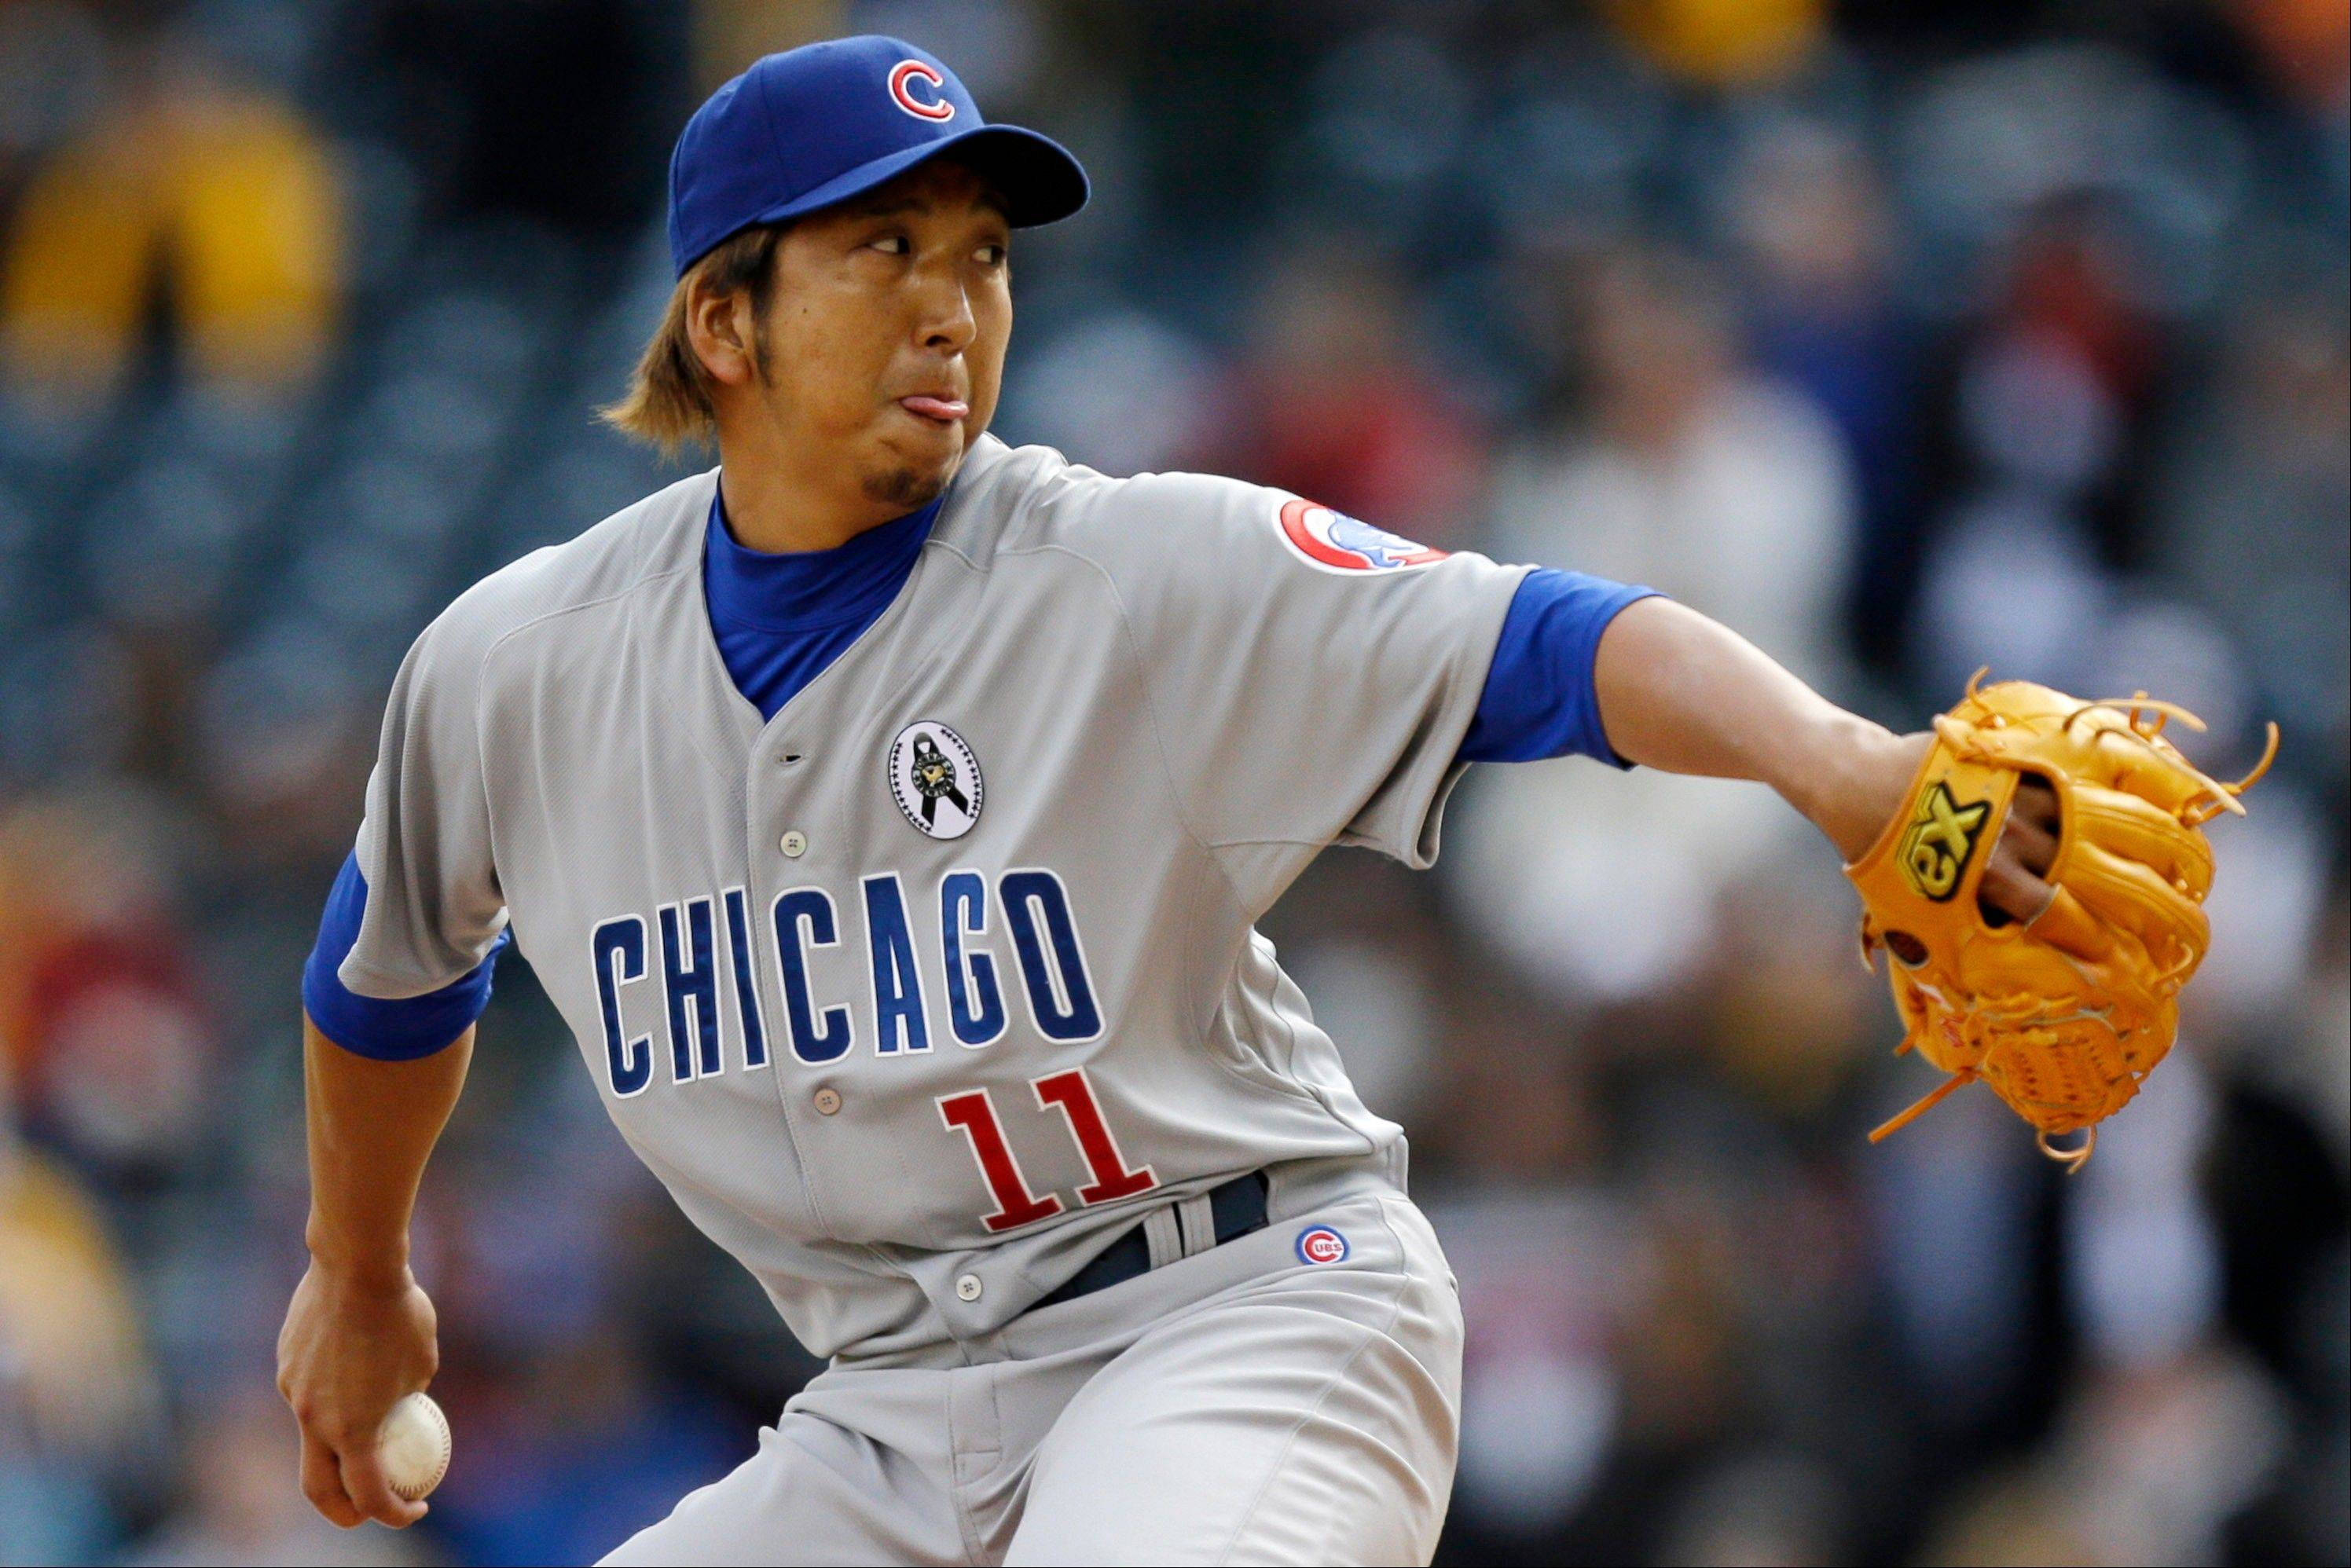 With only 12 appearances, the deal for Cubs relief pitcher Kyuji Fujikawa didn't turn out well for the Cubs front office this season. Fujikawa is awaiting Tommy John surgery and is done for the season.